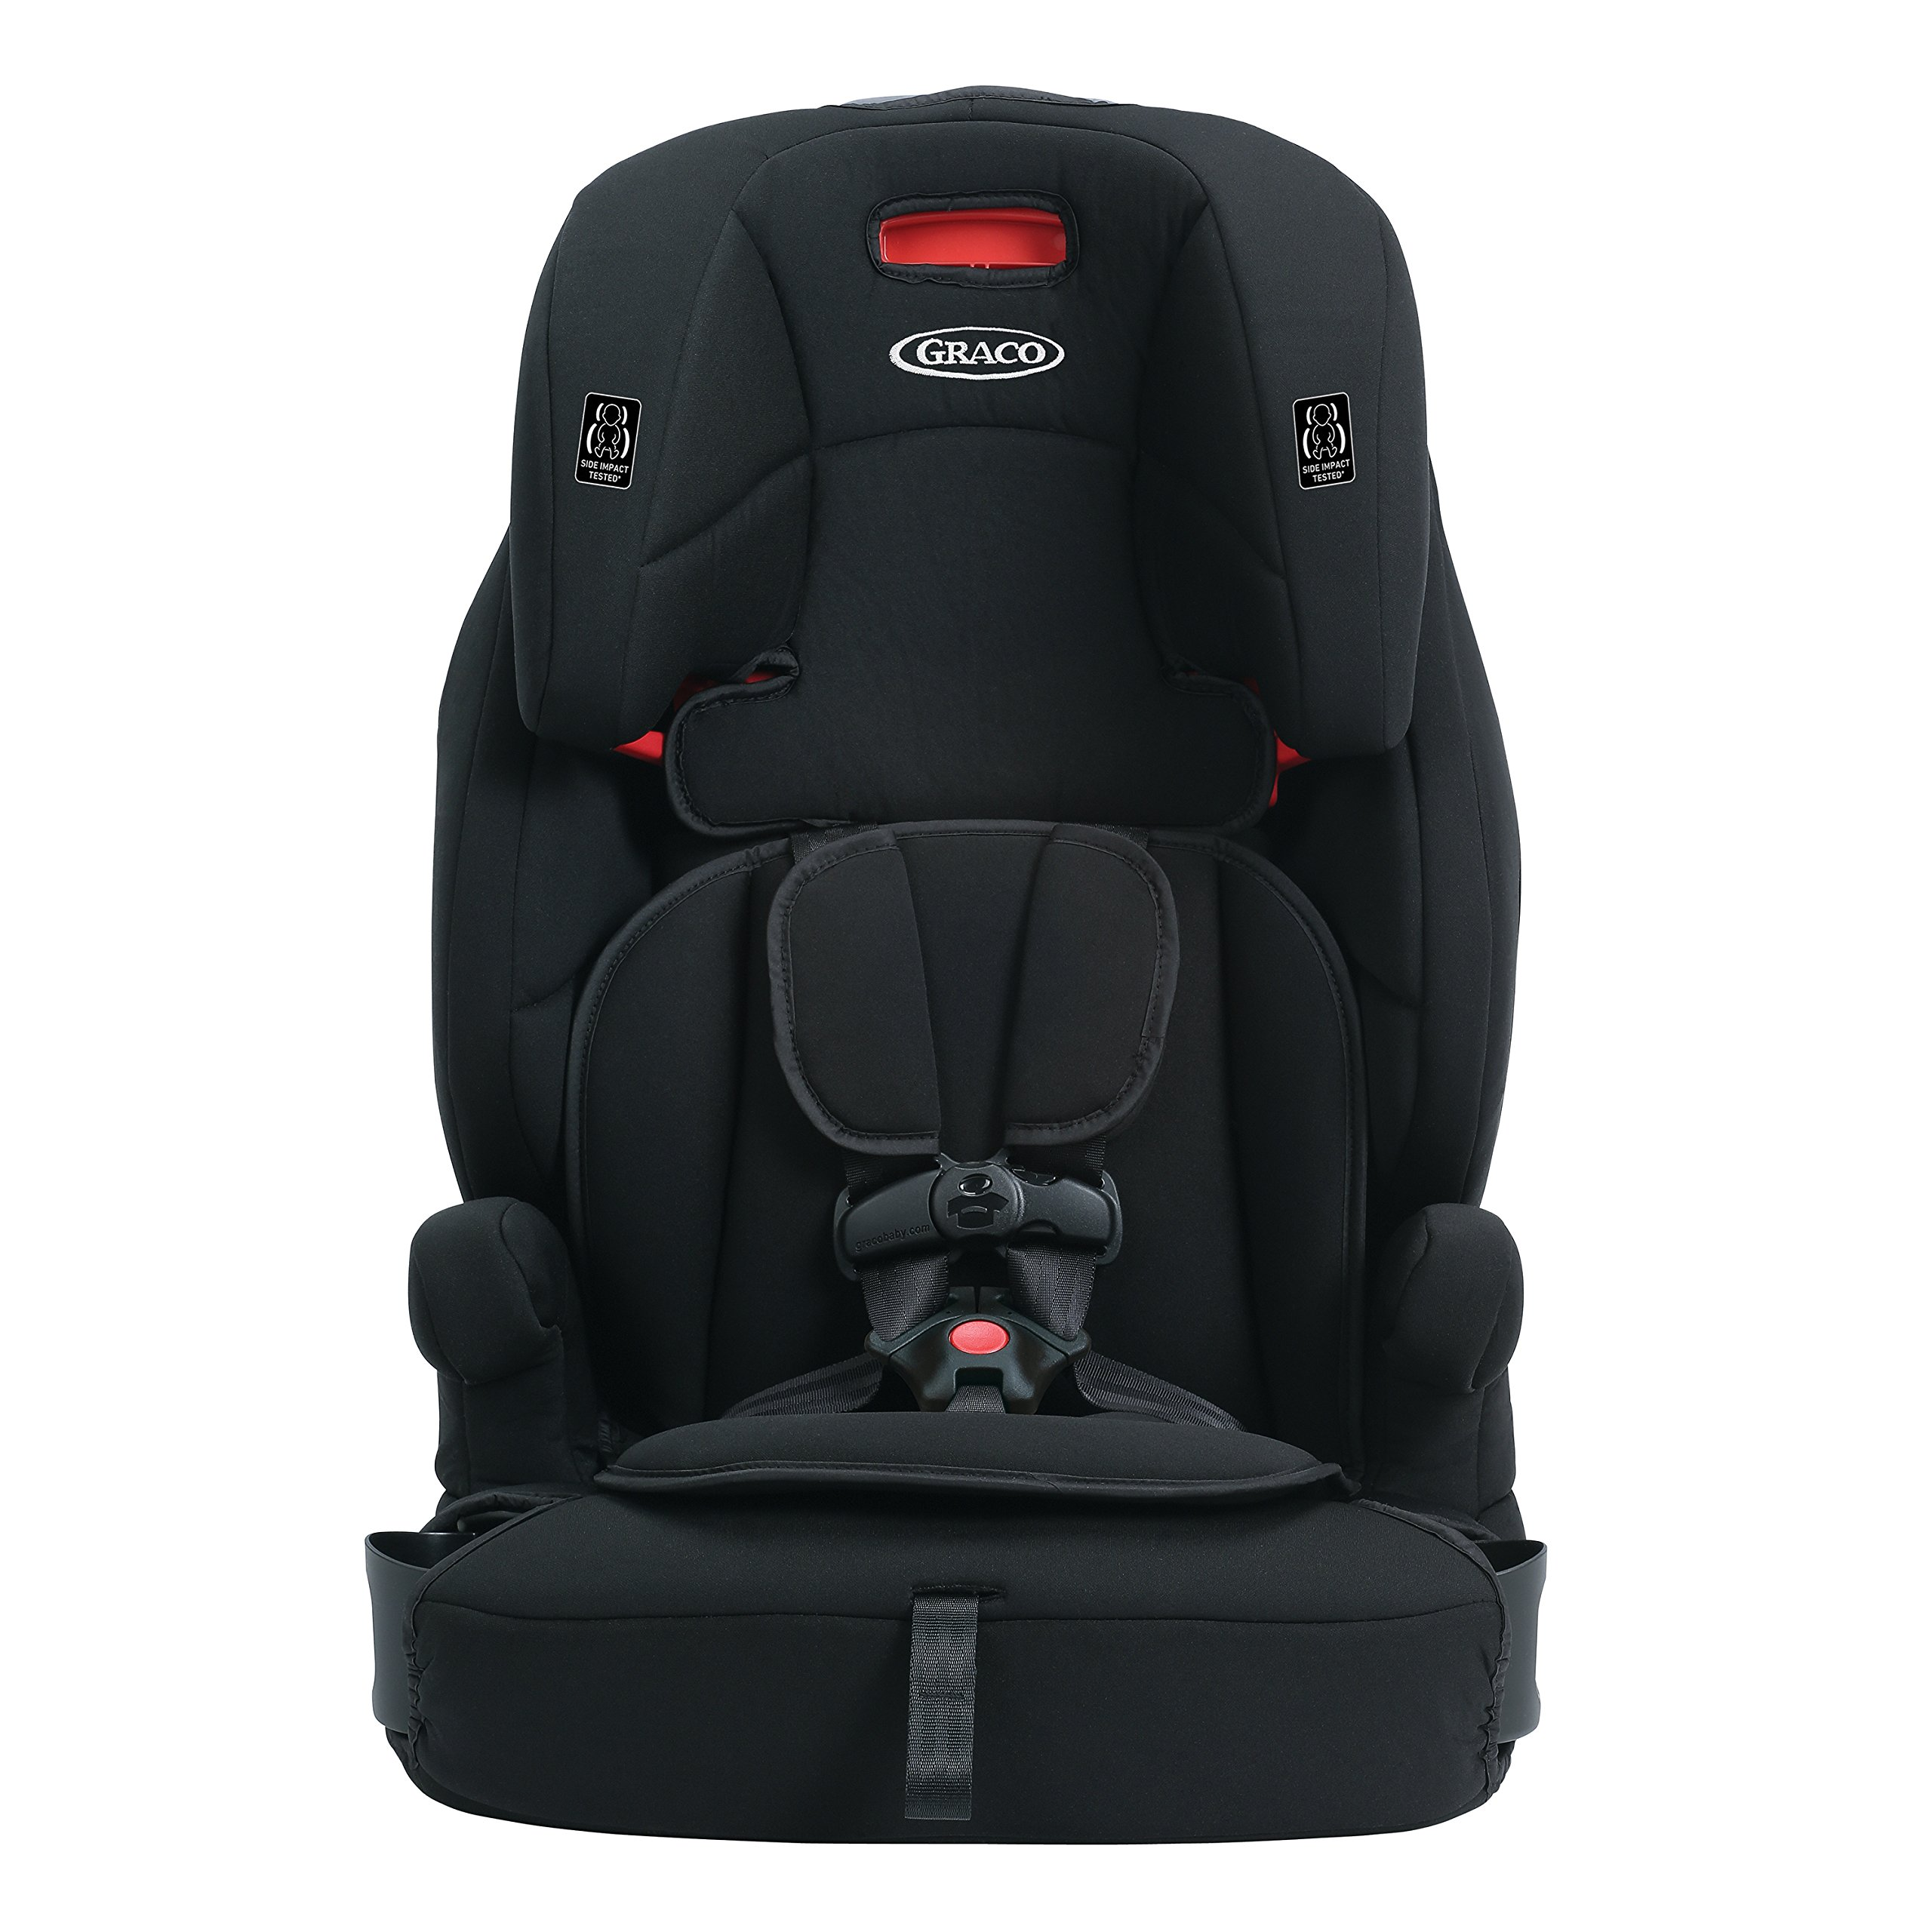 Graco Tranzitions 3-in-1 Harness Booster Car Seat, Proof by Graco (Image #2)